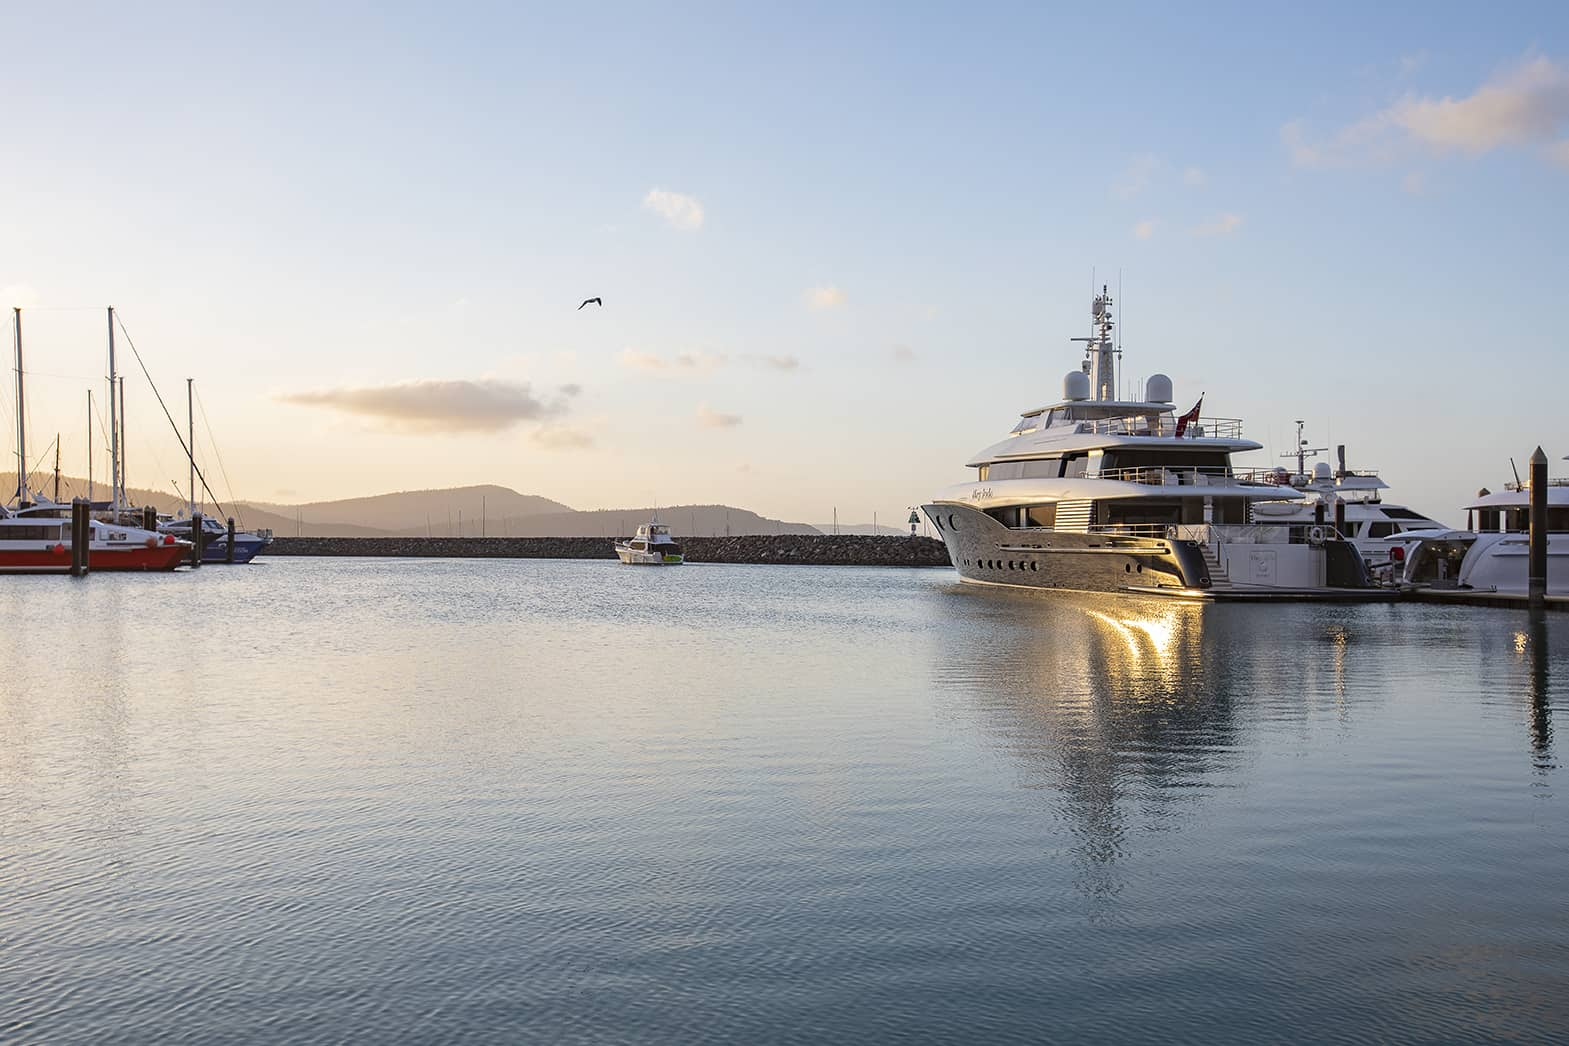 Superyacht vessel berthed at Coral Sea Marina Resort Superyacht arm at sunset, in the Whitsundays